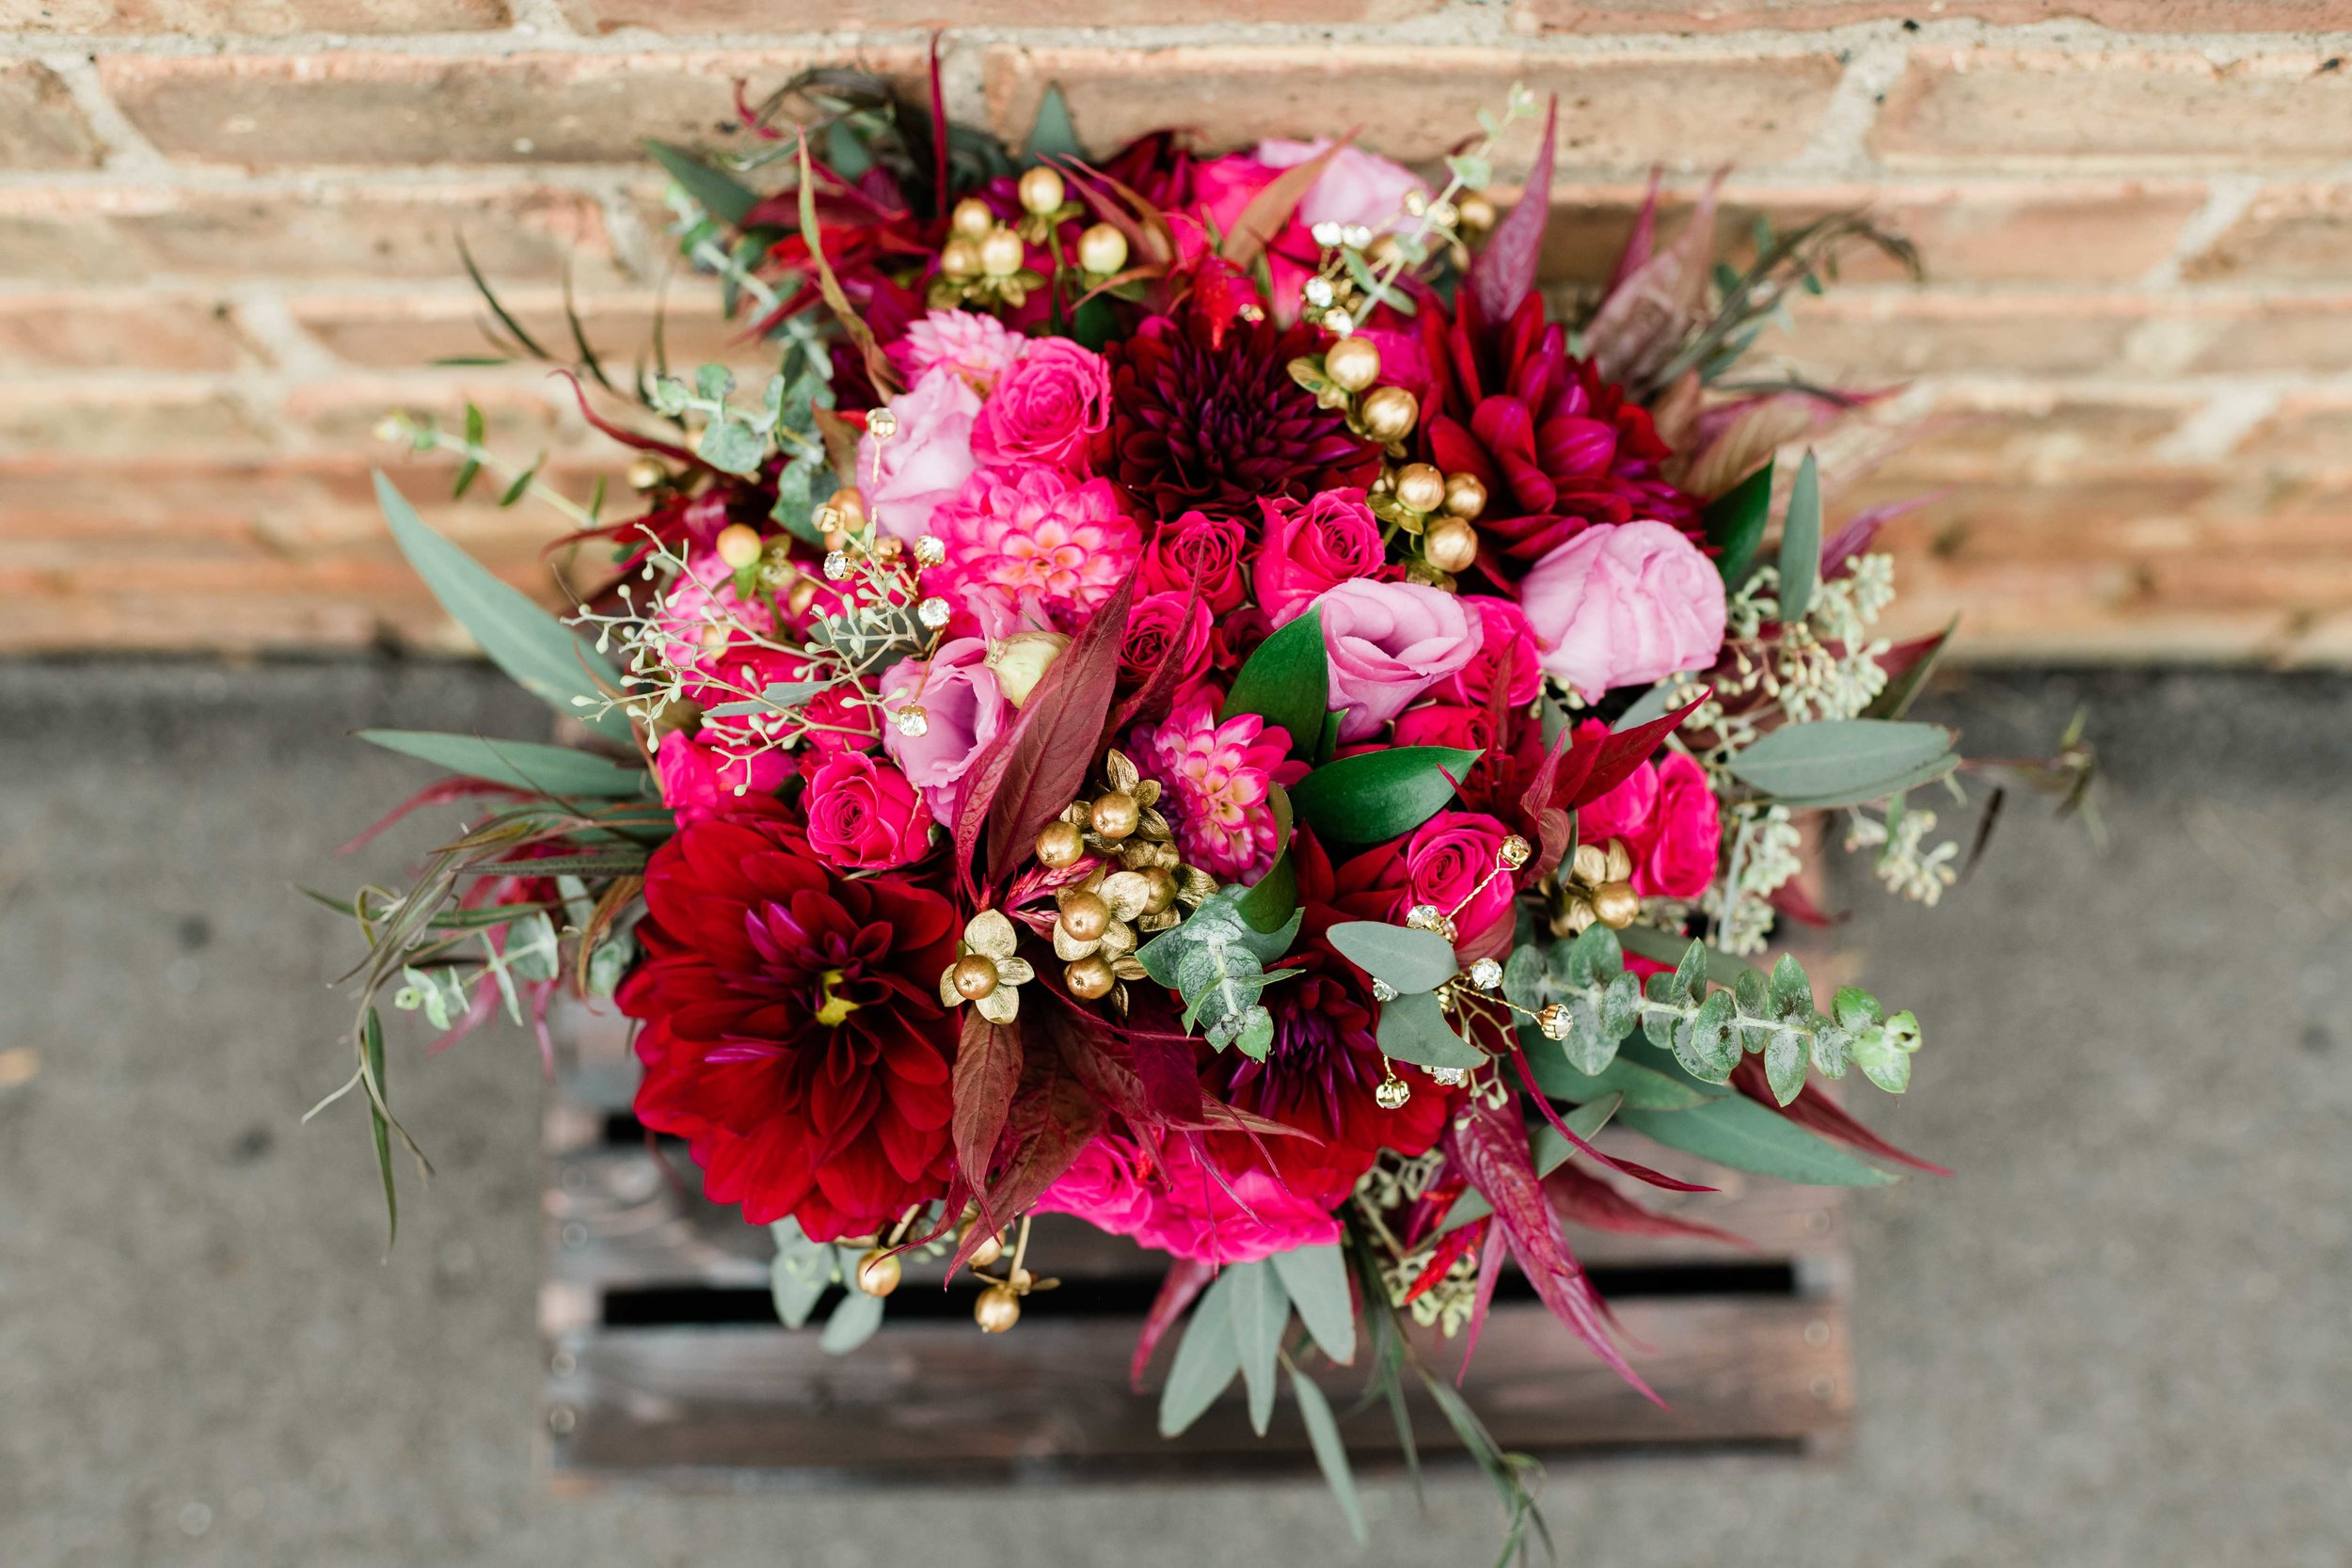 Bridal bouquet on wooden crate